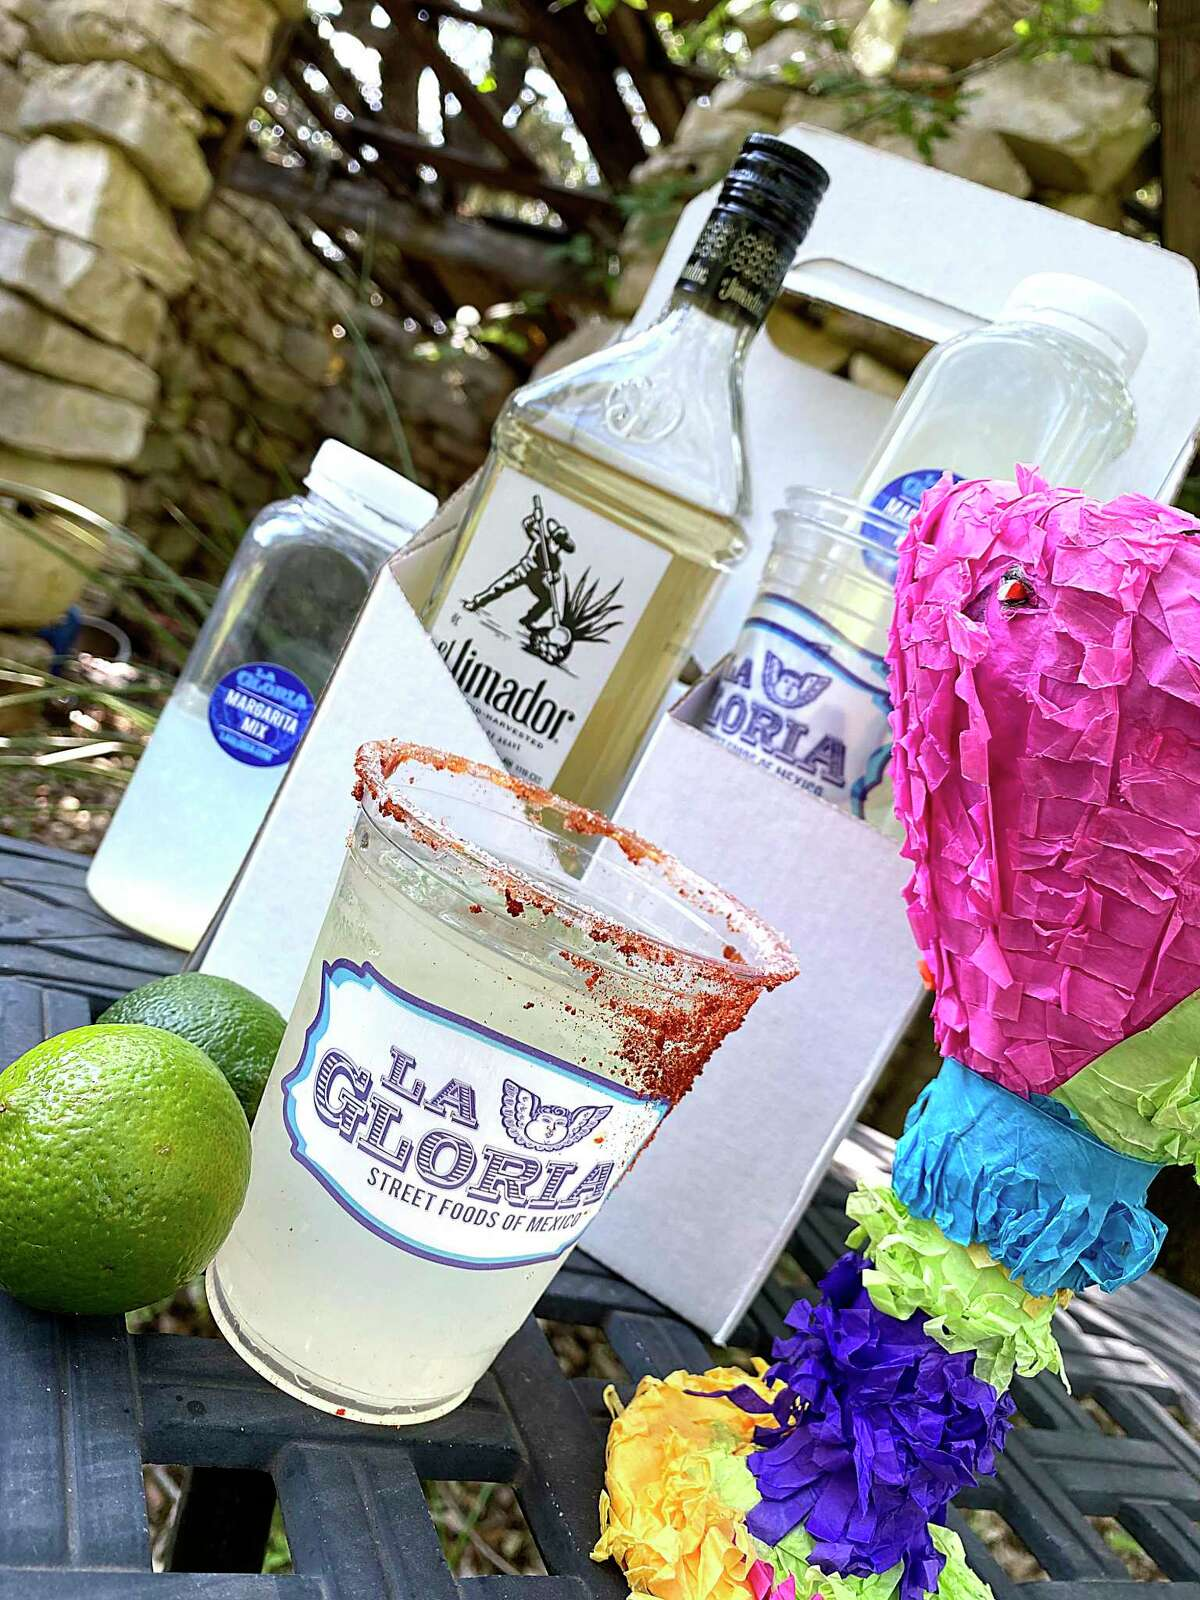 La Gloria at the Pearl makes it easier to celebrate Cinco de Mayo at home during the coronavirus crisis with to-go margaritas and Mexican food, including this margarita kit with margarita mix, cups, salt and a half-size bottle of El Jimador tequila.